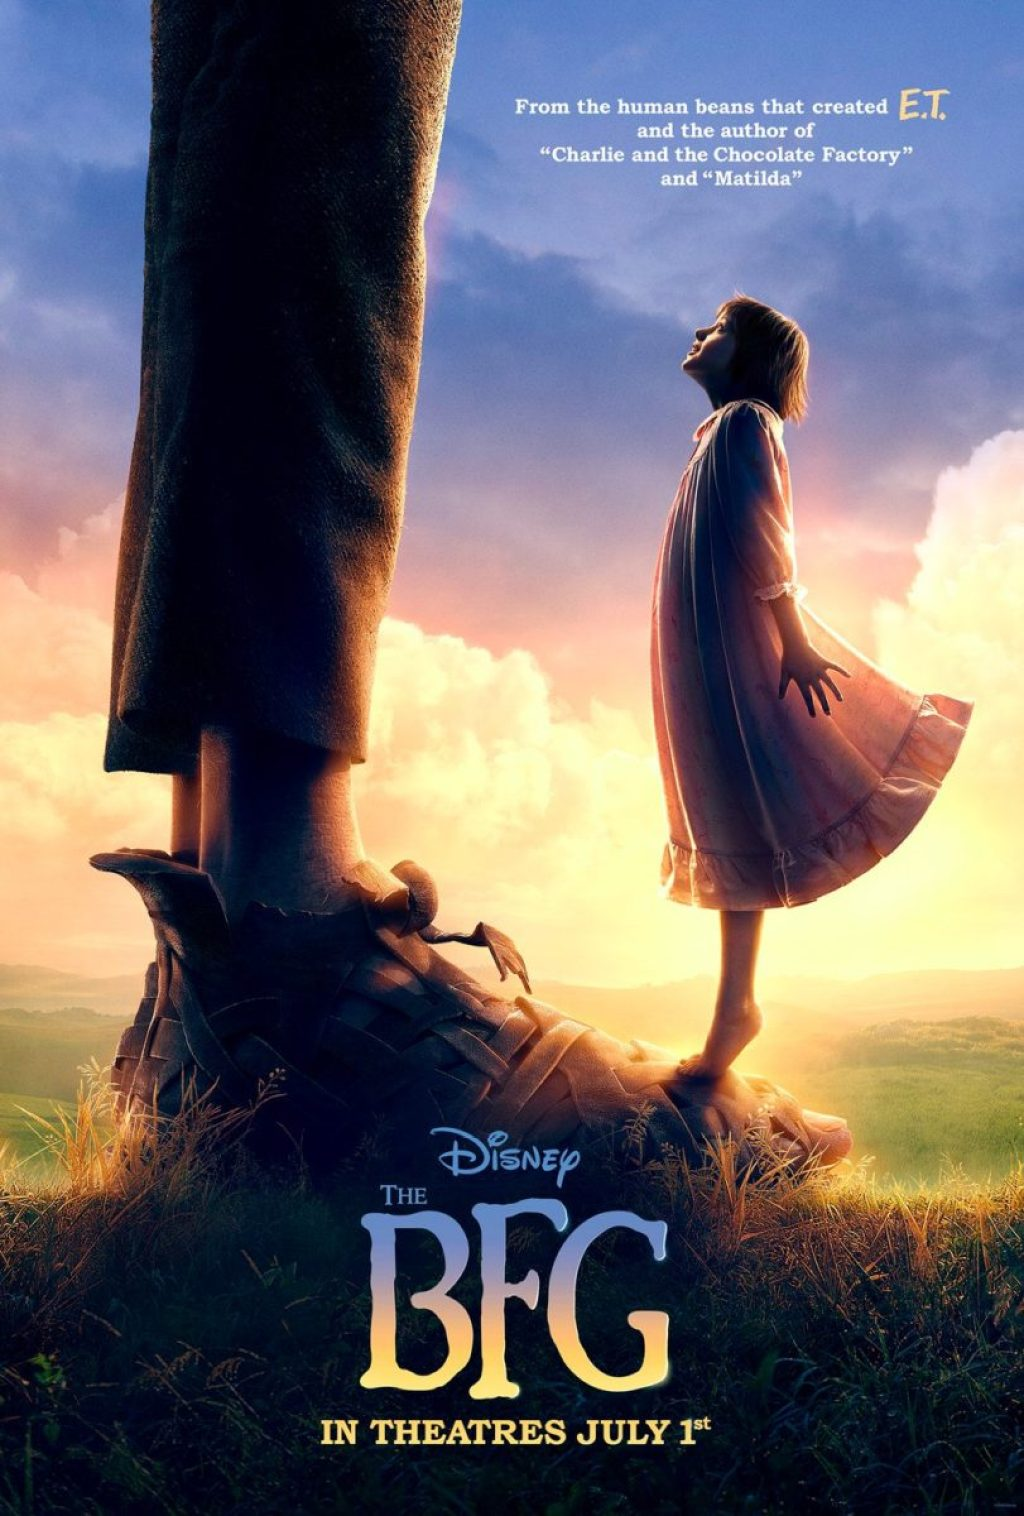 first-poster-for-steven-spielbergs-the-bfg